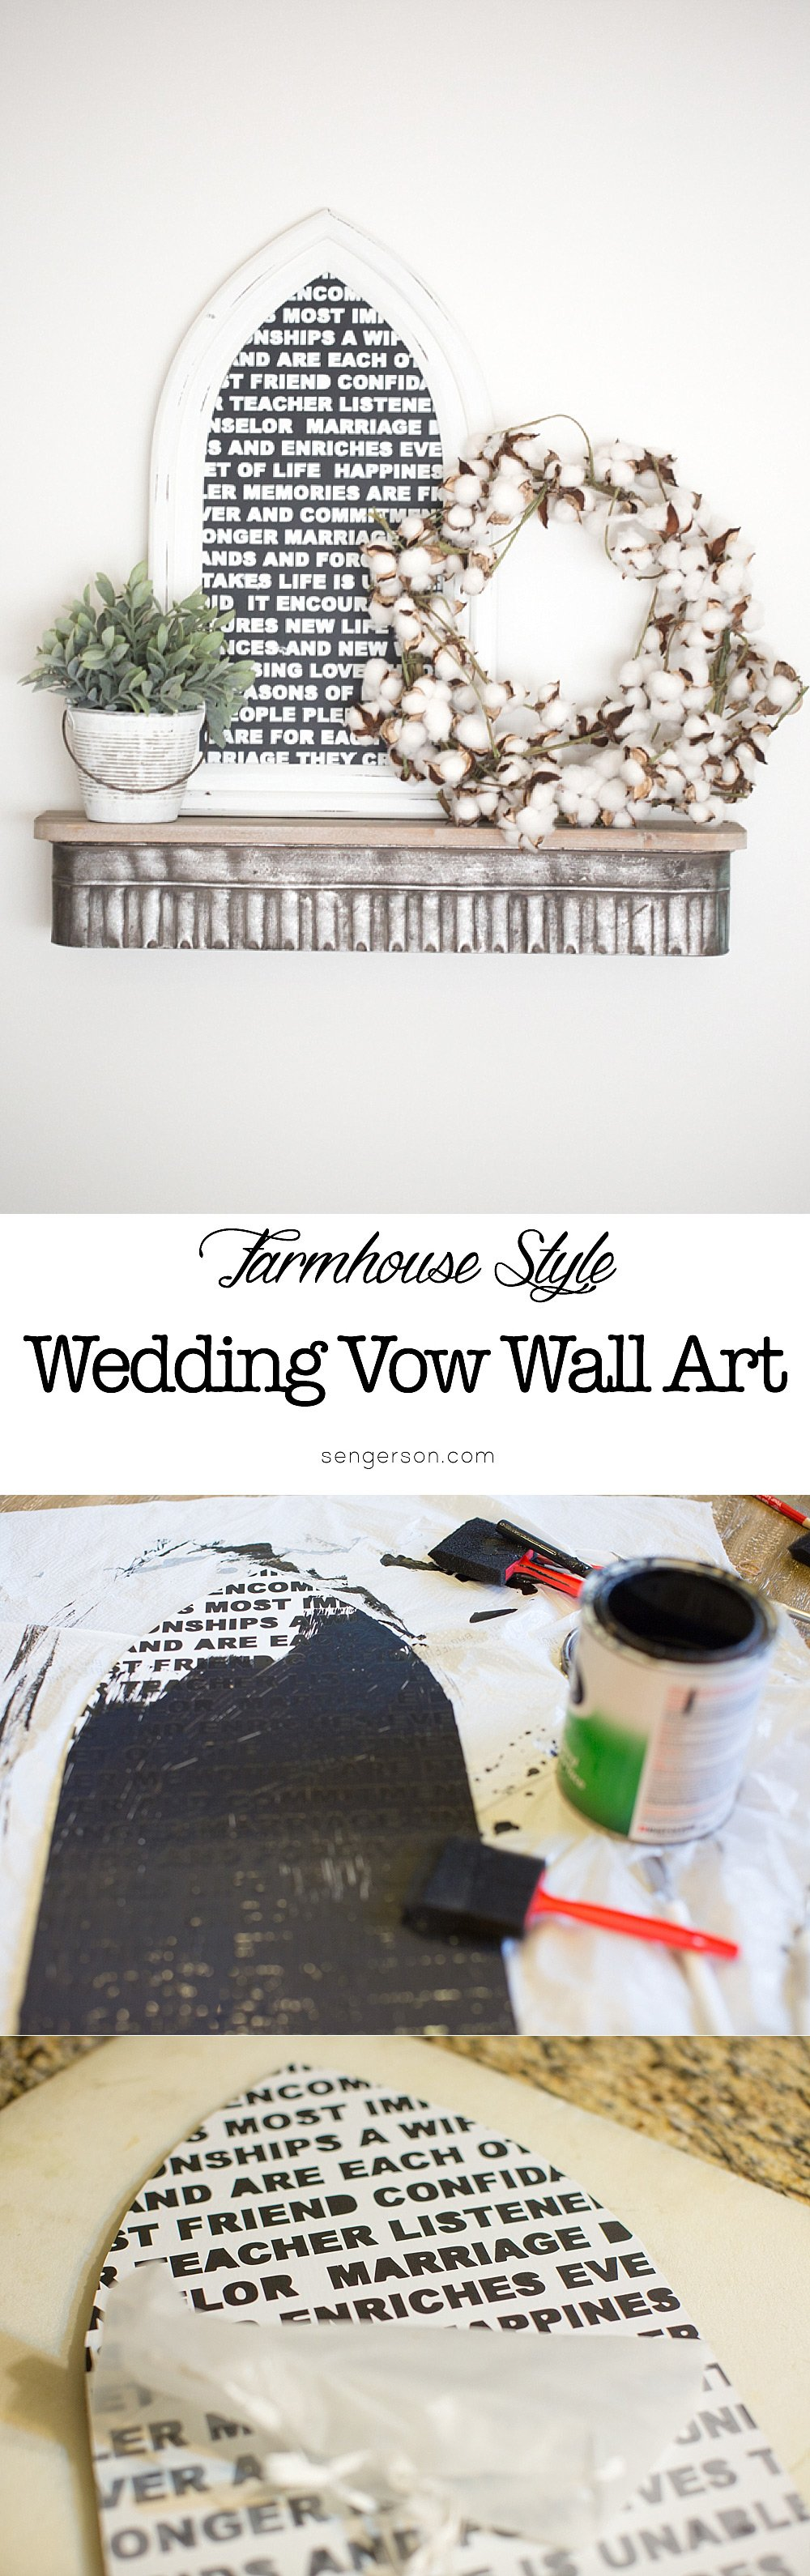 An easy project to do to display your vows - love the farmhouse style look of this! This is a project you could do pretty easily just within 2 hours across 2 days with material you already have - using an upcycled frame and plywood.